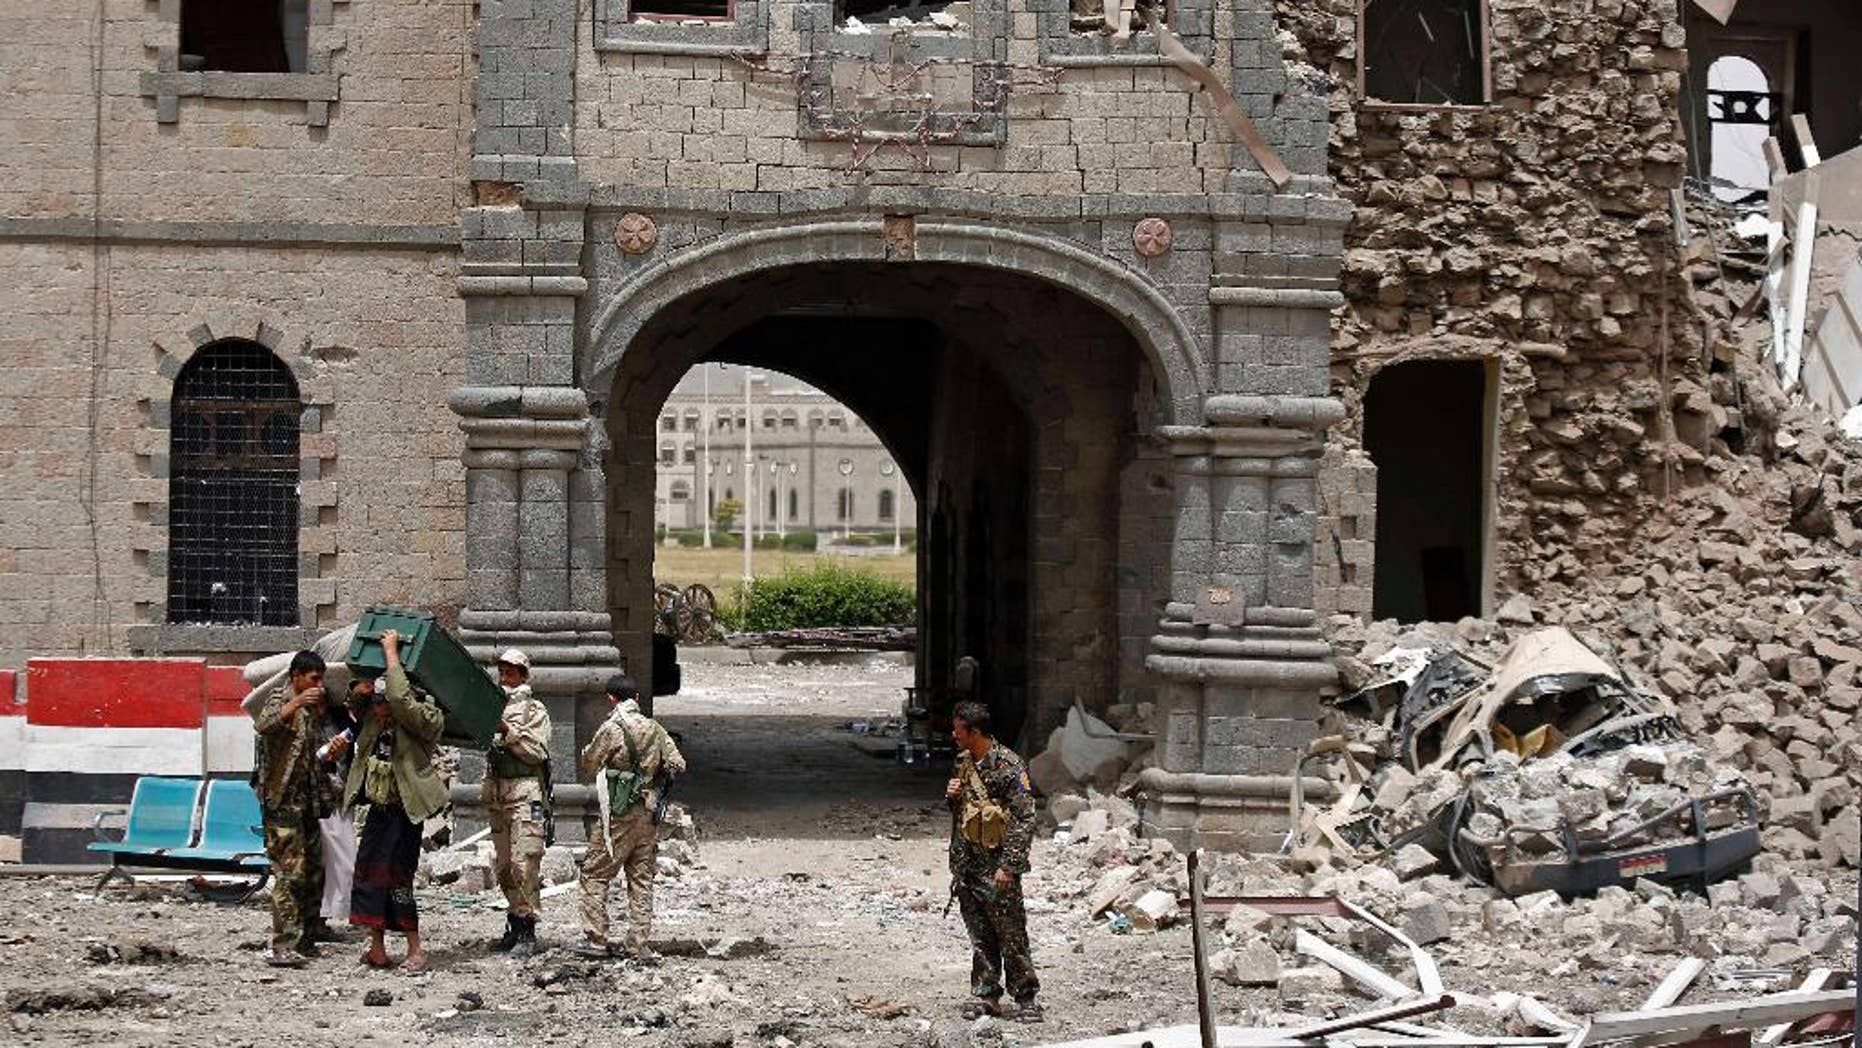 Shiite rebels known as Houthis wearing army uniforms stand guard in front of Yemen's Defense Ministry building after it was damaged by Saudi-led airstrikes in Sanaa, Yemen, Wednesday, June 10, 2015. A series of airstrikes by the Saudi-led military coalition on Tuesday struck the building, which is under the control of Shiite rebels who last year seized the capital, Sanaa, officials said. (AP Photo/Hani Mohammed)